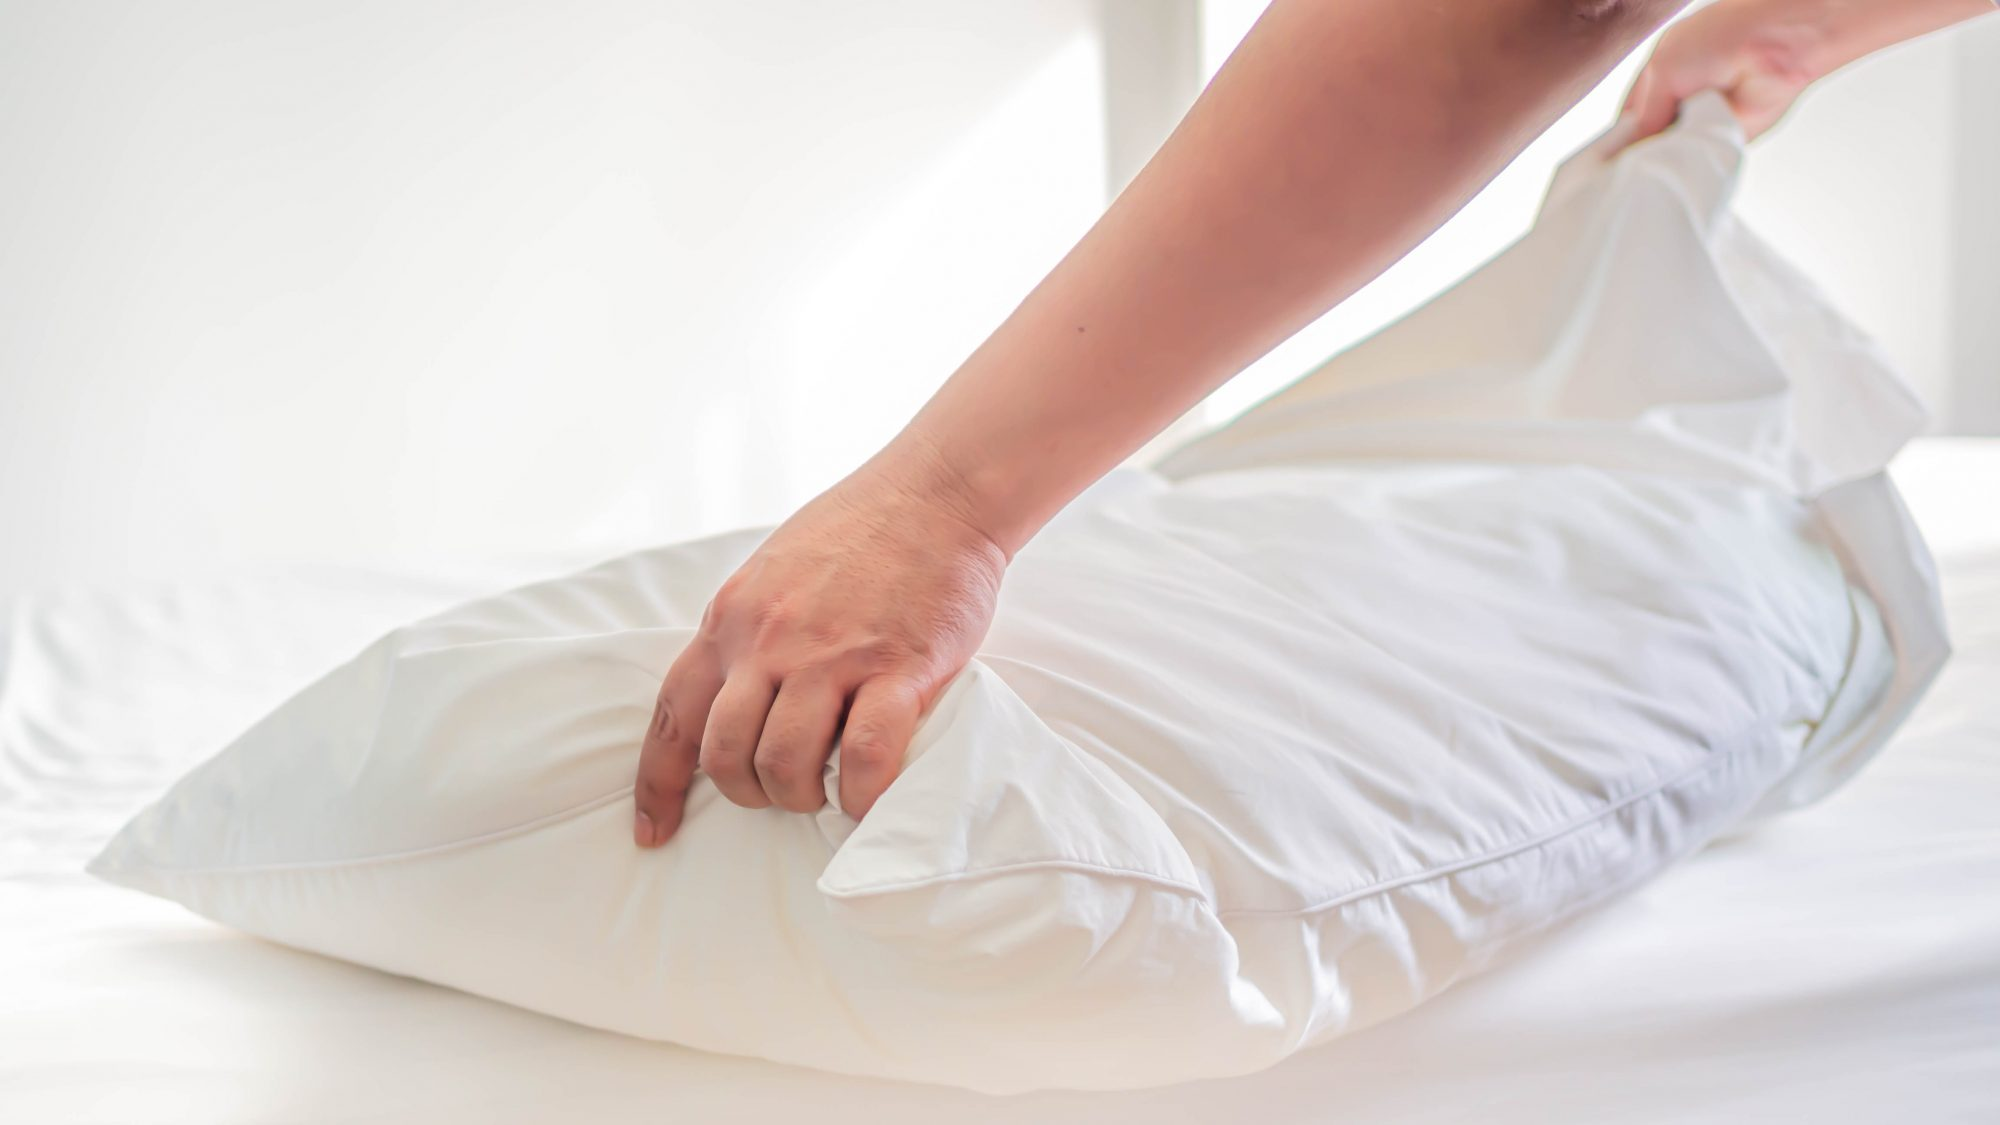 Putting on clean pillowcase